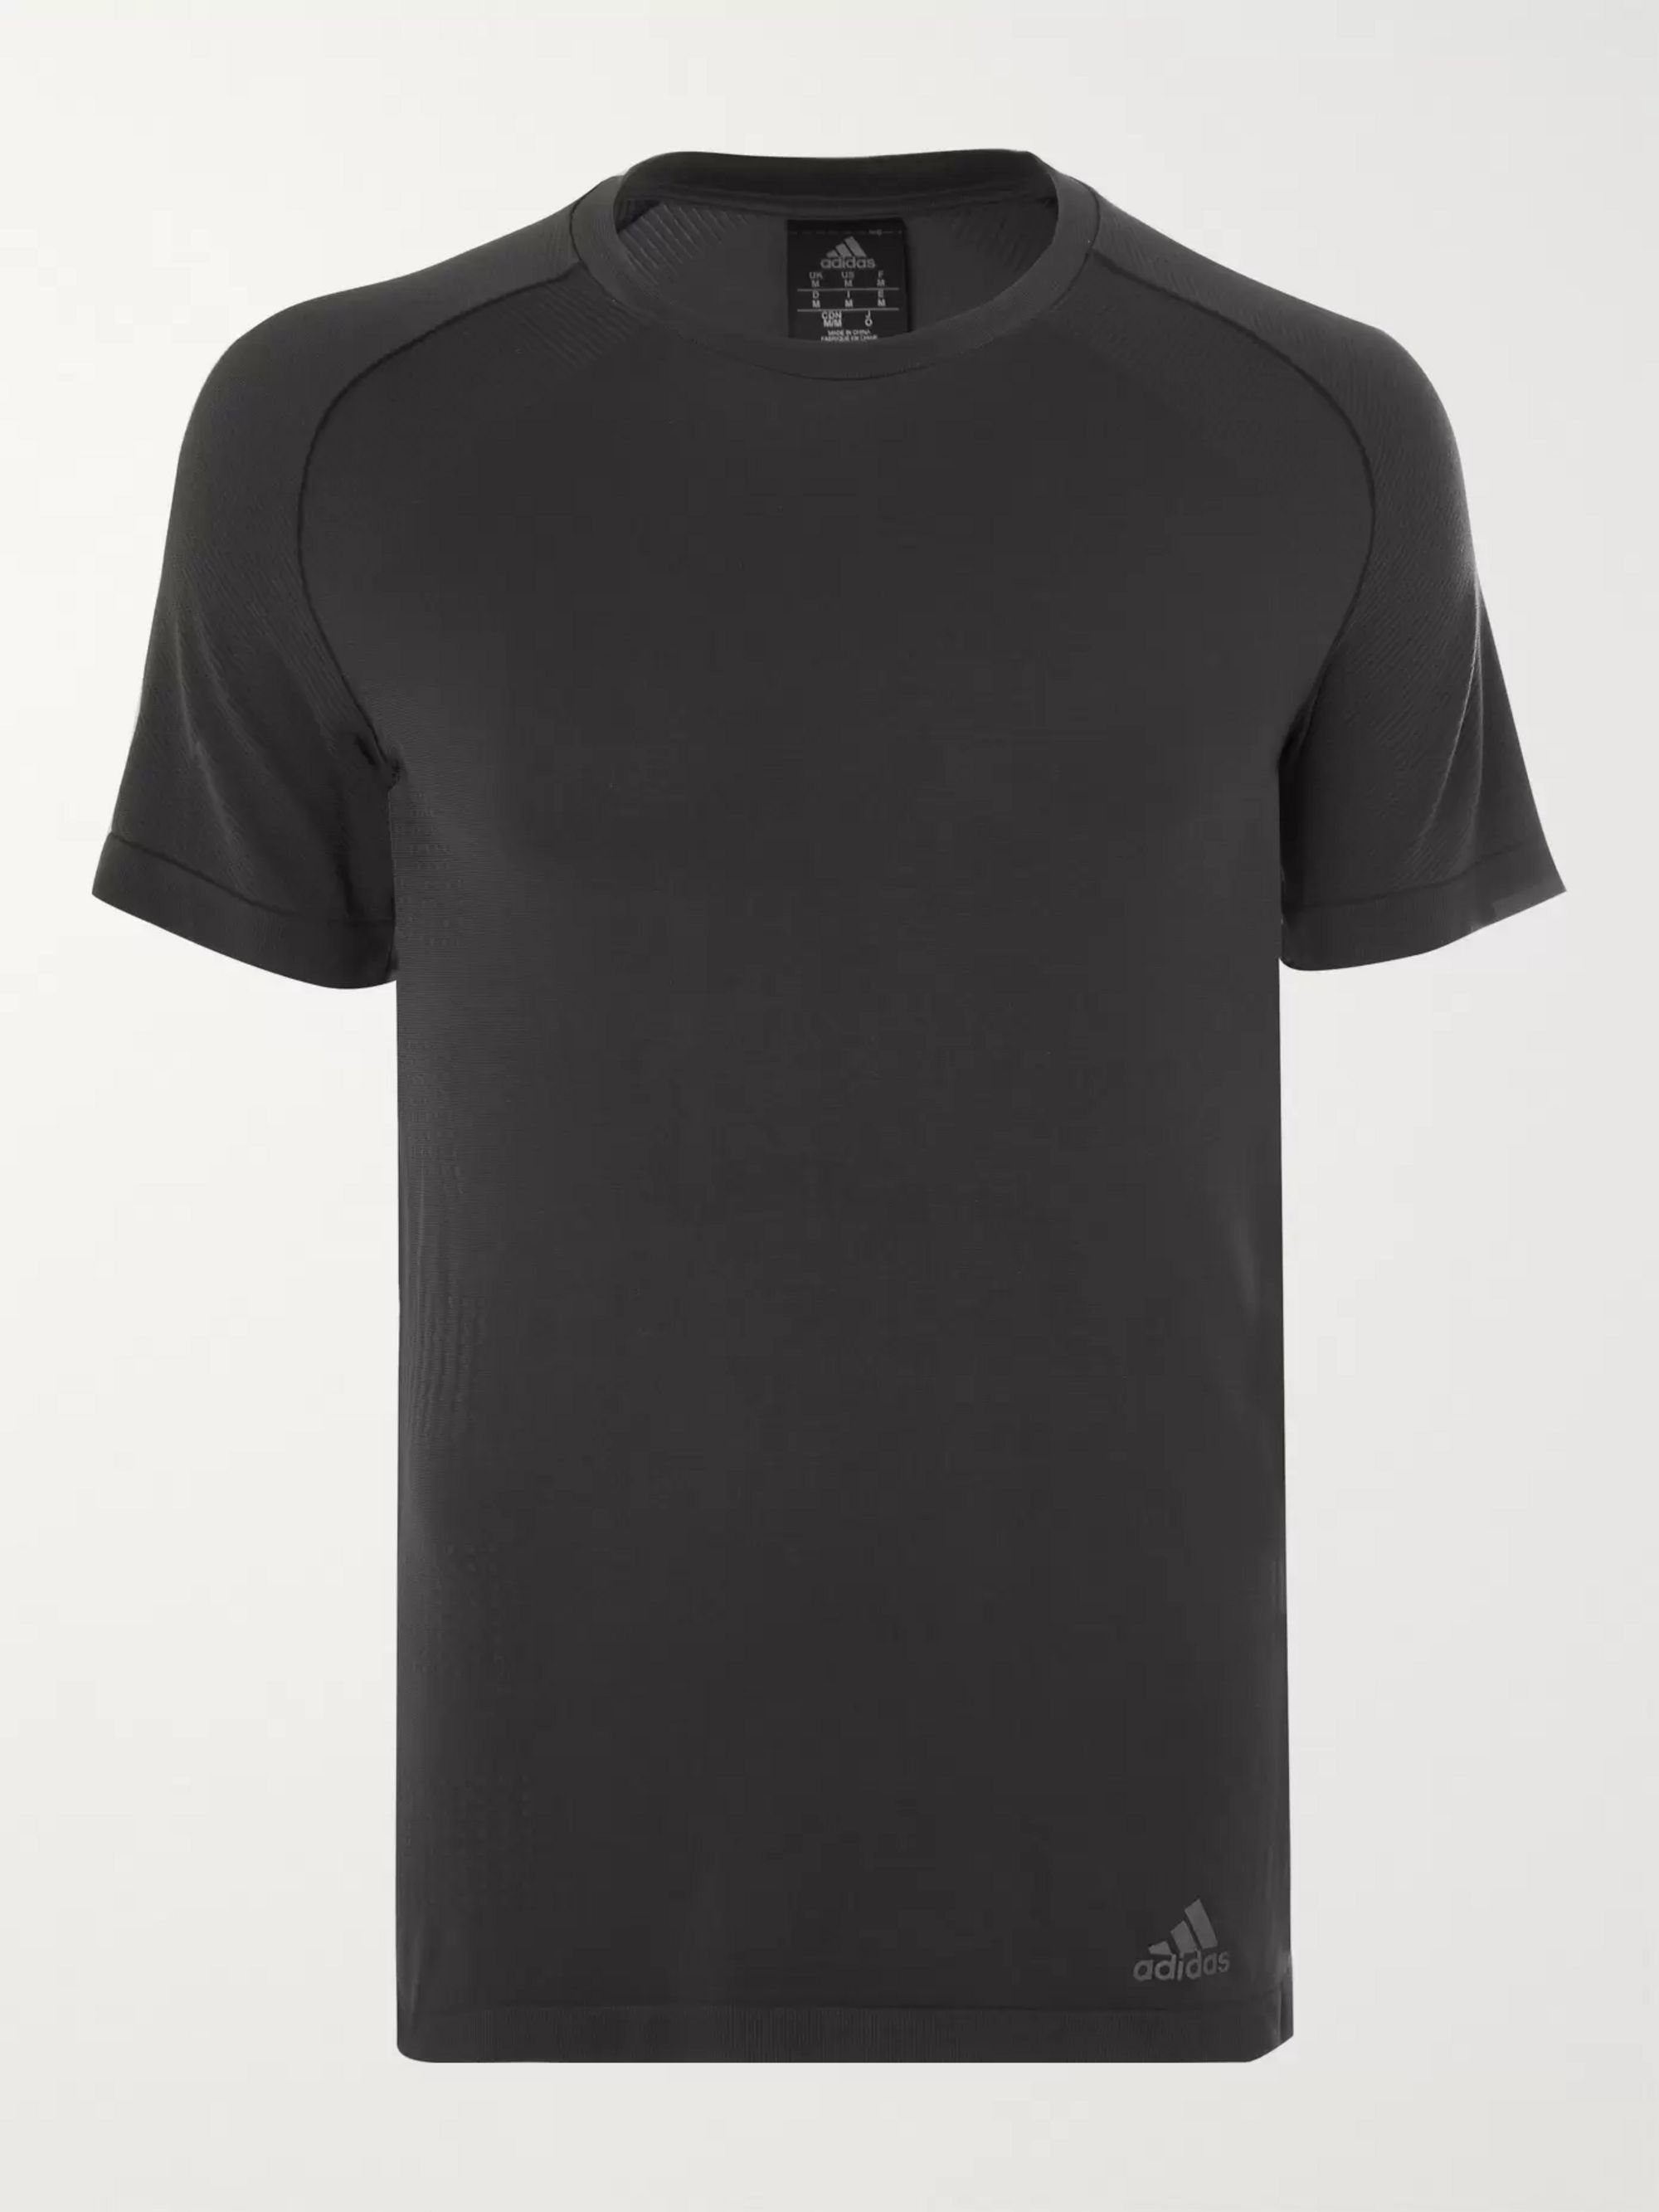 Adidas Sport Ultra Primeknit Light T-Shirt